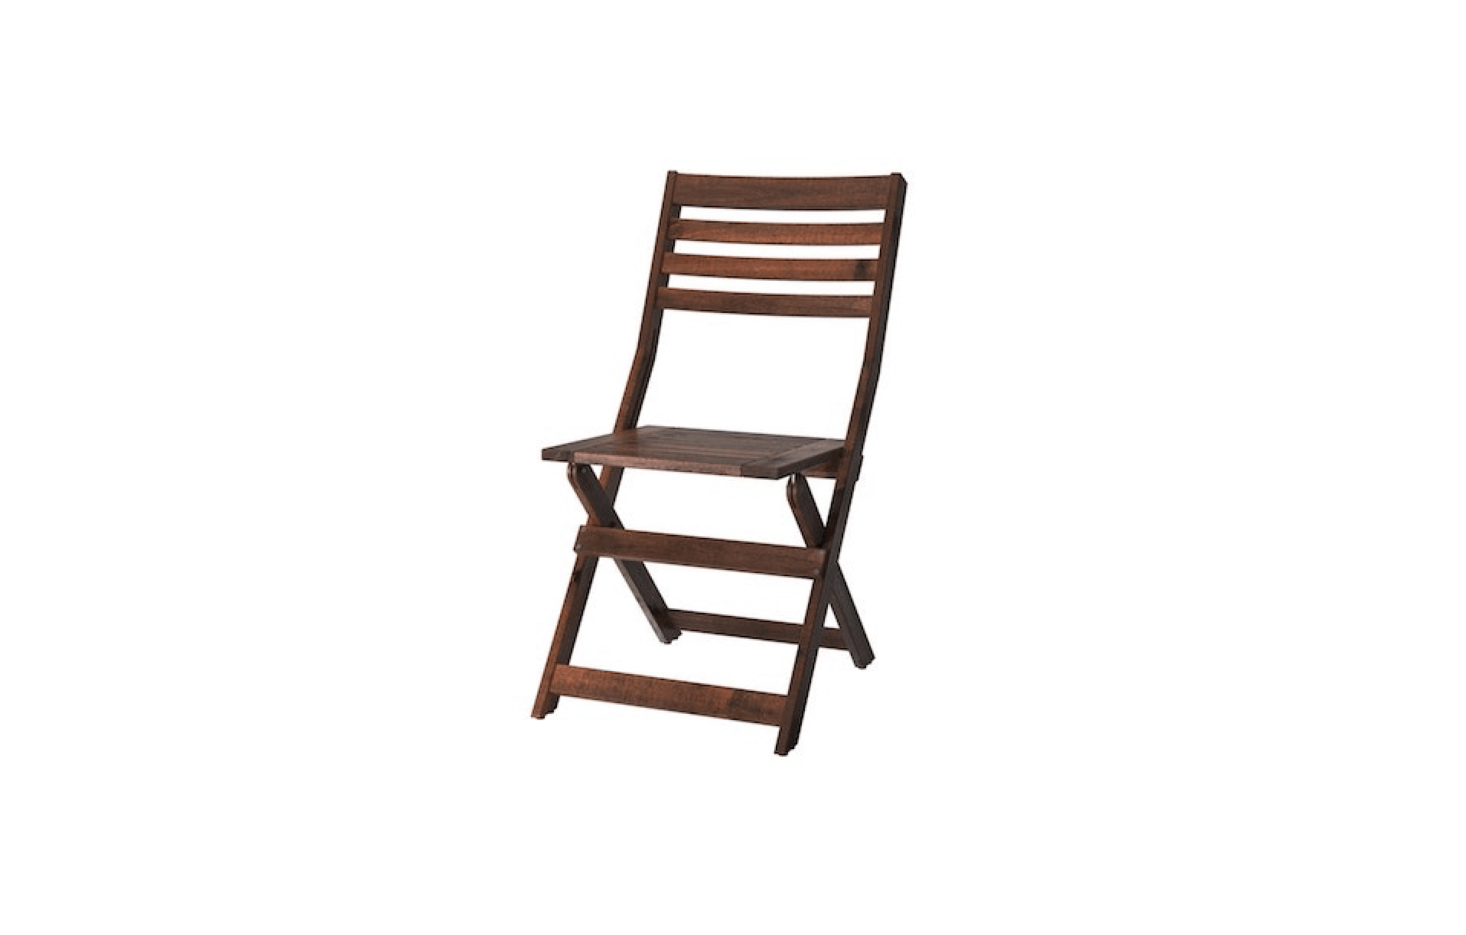 Pleasing 10 Easy Pieces Folding Patio Chairs Gardenista Andrewgaddart Wooden Chair Designs For Living Room Andrewgaddartcom